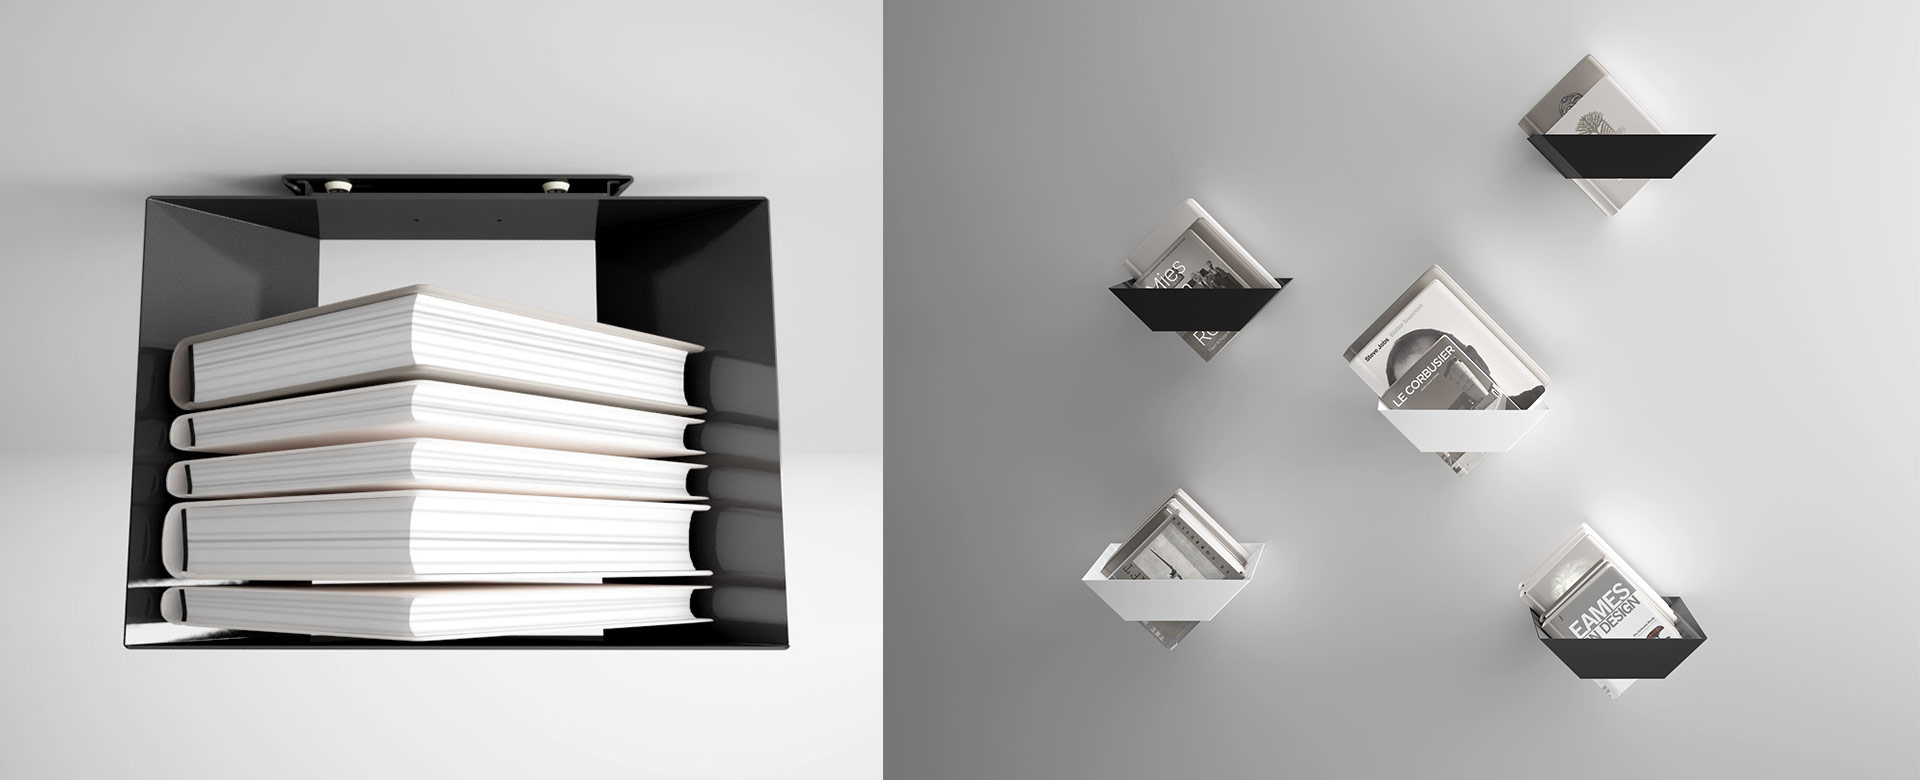 KOKU Wall-Mounted Bookshelves